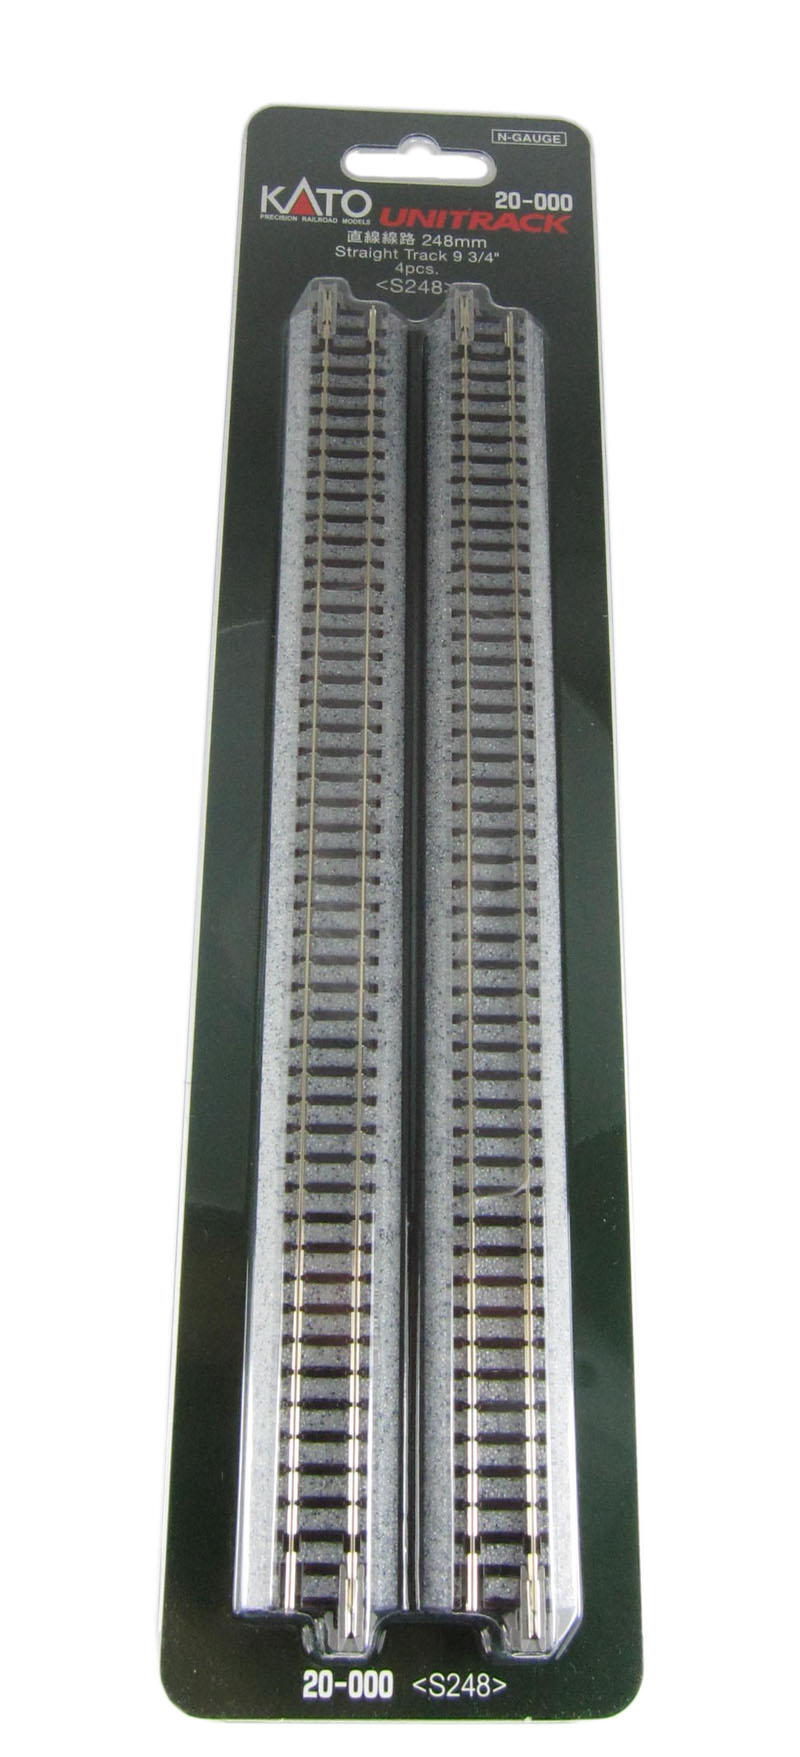 Kato N Gauge Track Points Products How To Wire A Switch Ground Level 248mm Straight X 4 8 More Than 10 In Stock